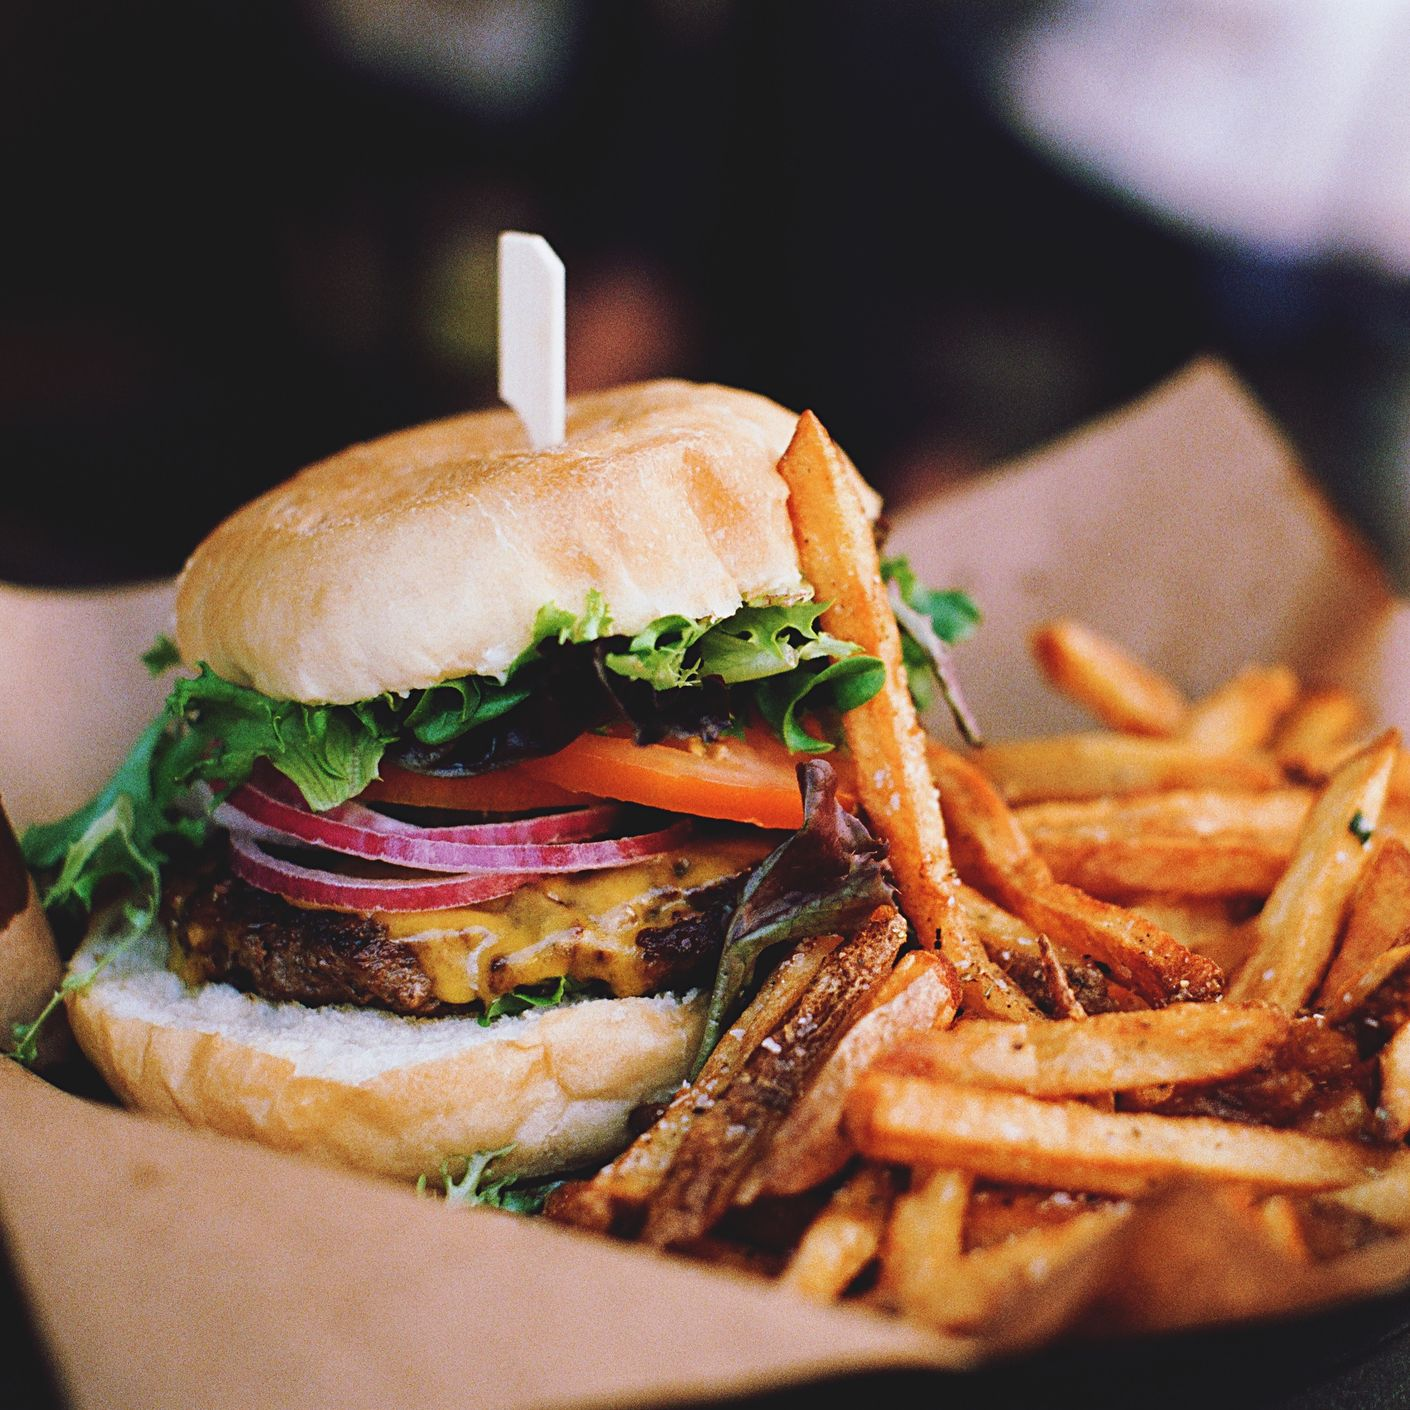 Close-Up Of Burger With French Fries On Table